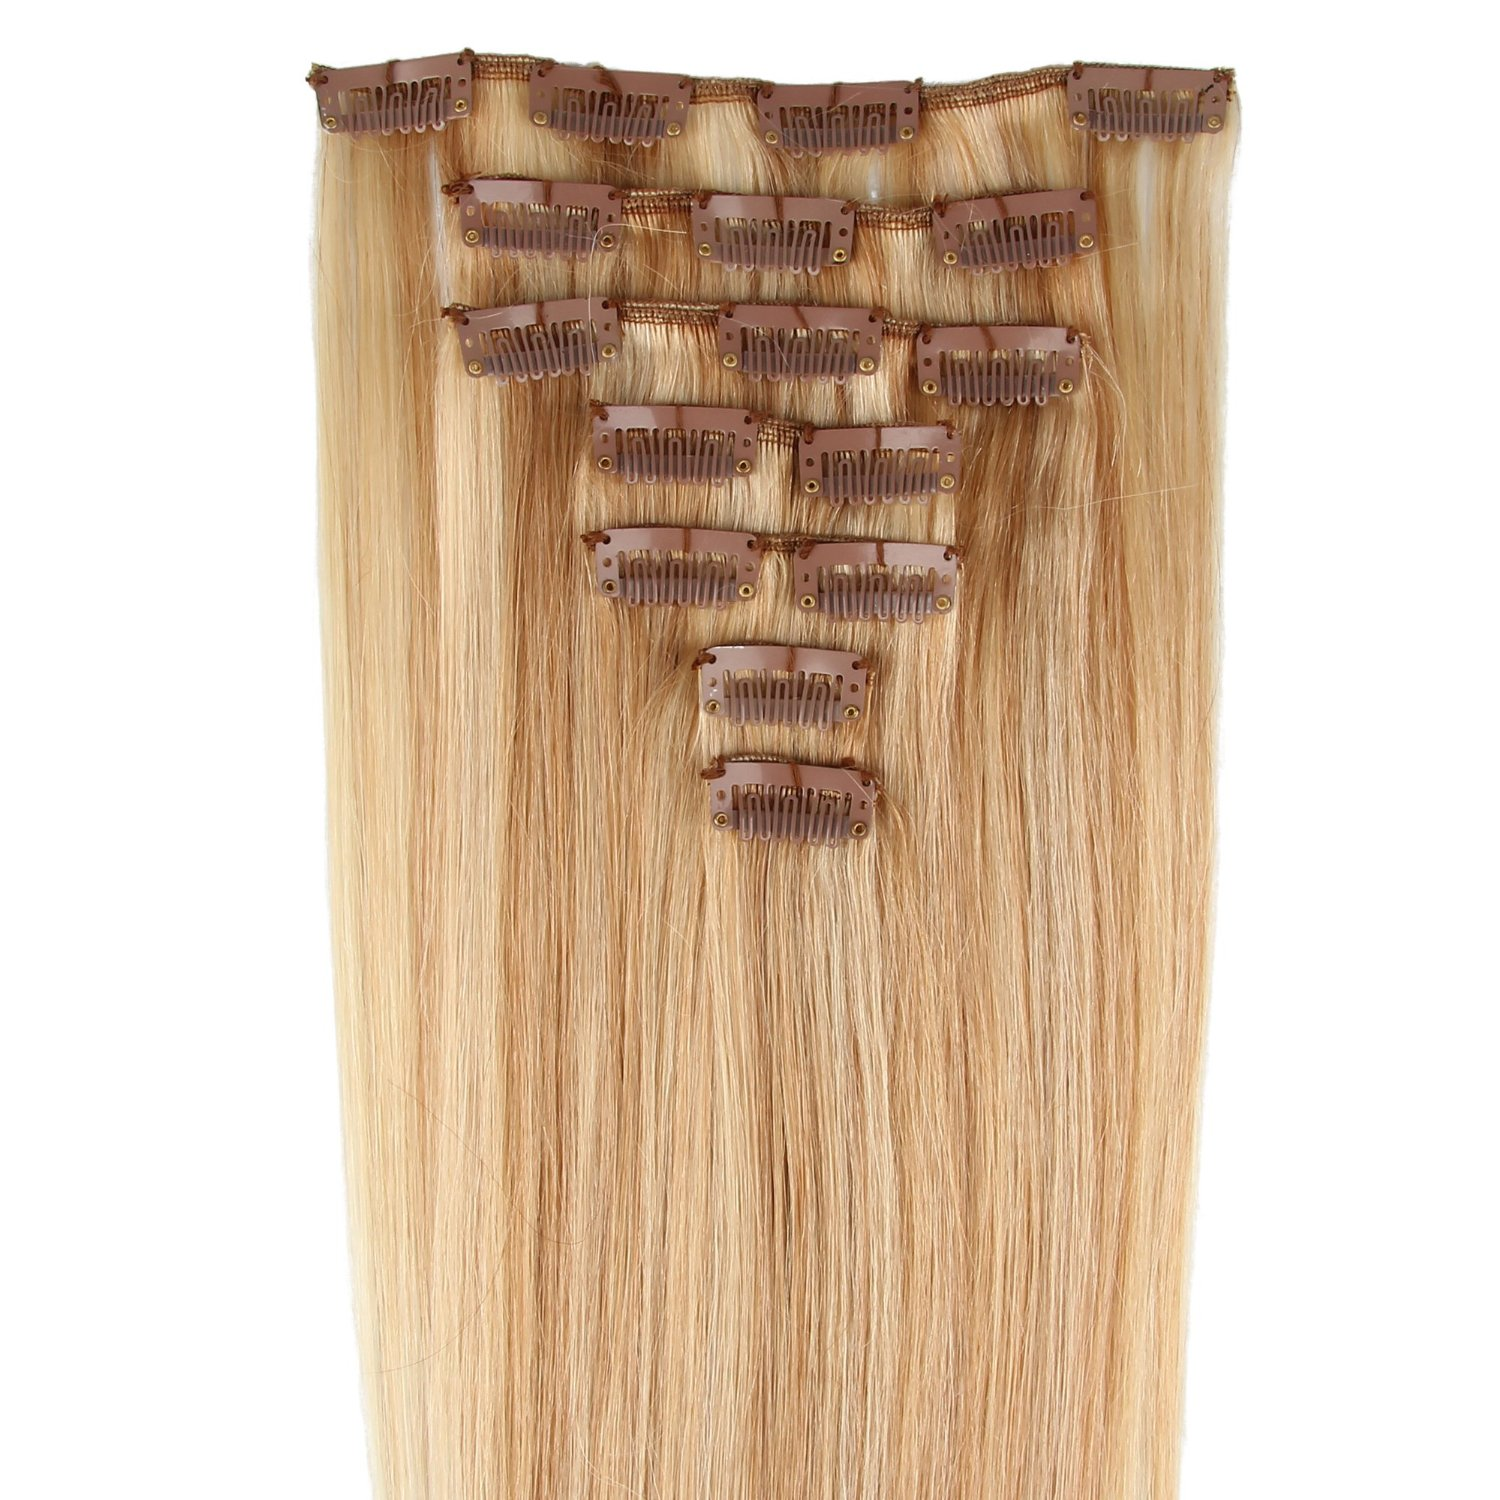 """Beauty7 15"""" 18"""" 20"""" 22"""" 24"""" Clip in Real Human Hair Extensions Straight #27/613 Strawberry Blonde & Bleach Blonde(20"""" 7pcs 70g)"""